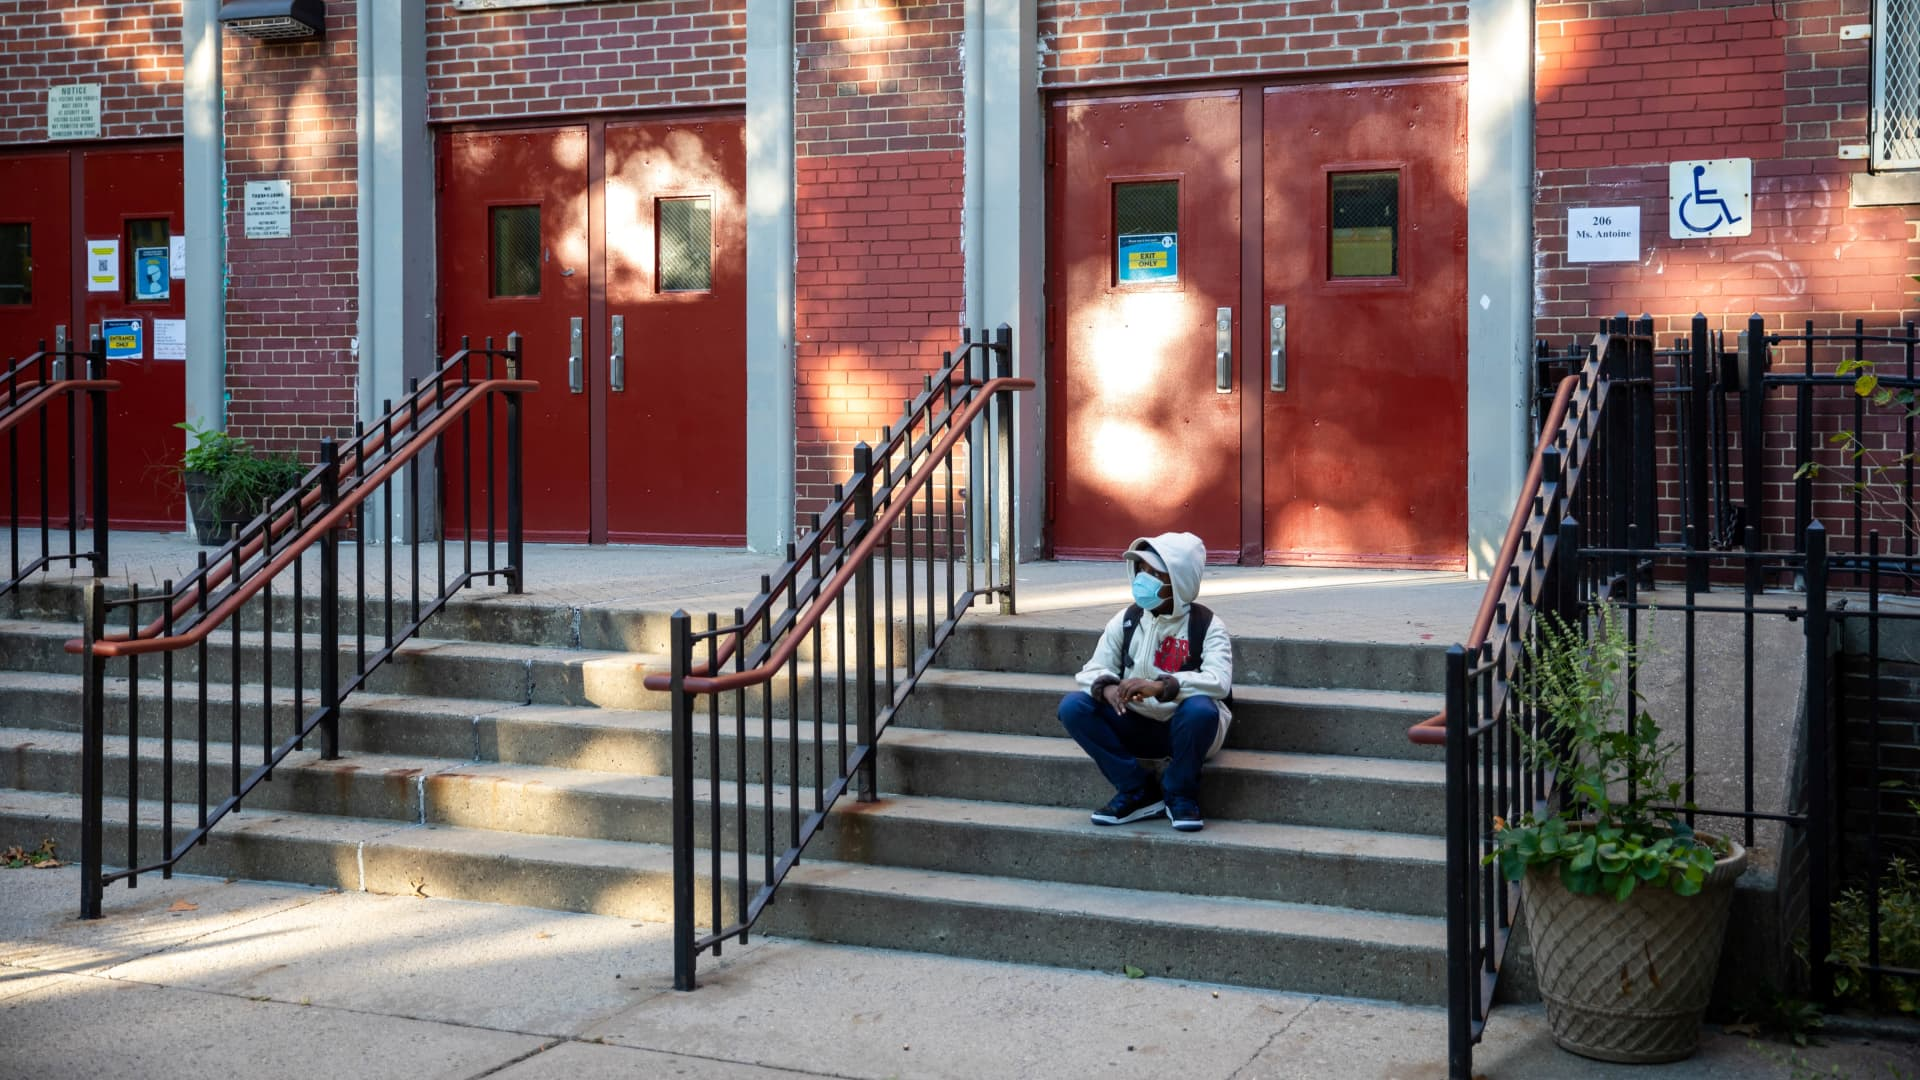 A student is seen on the steps of the closed public school PS 139 in the Ditmas Park neighborhood in Brooklyn of New York, the United States, Oct. 8, 2020.